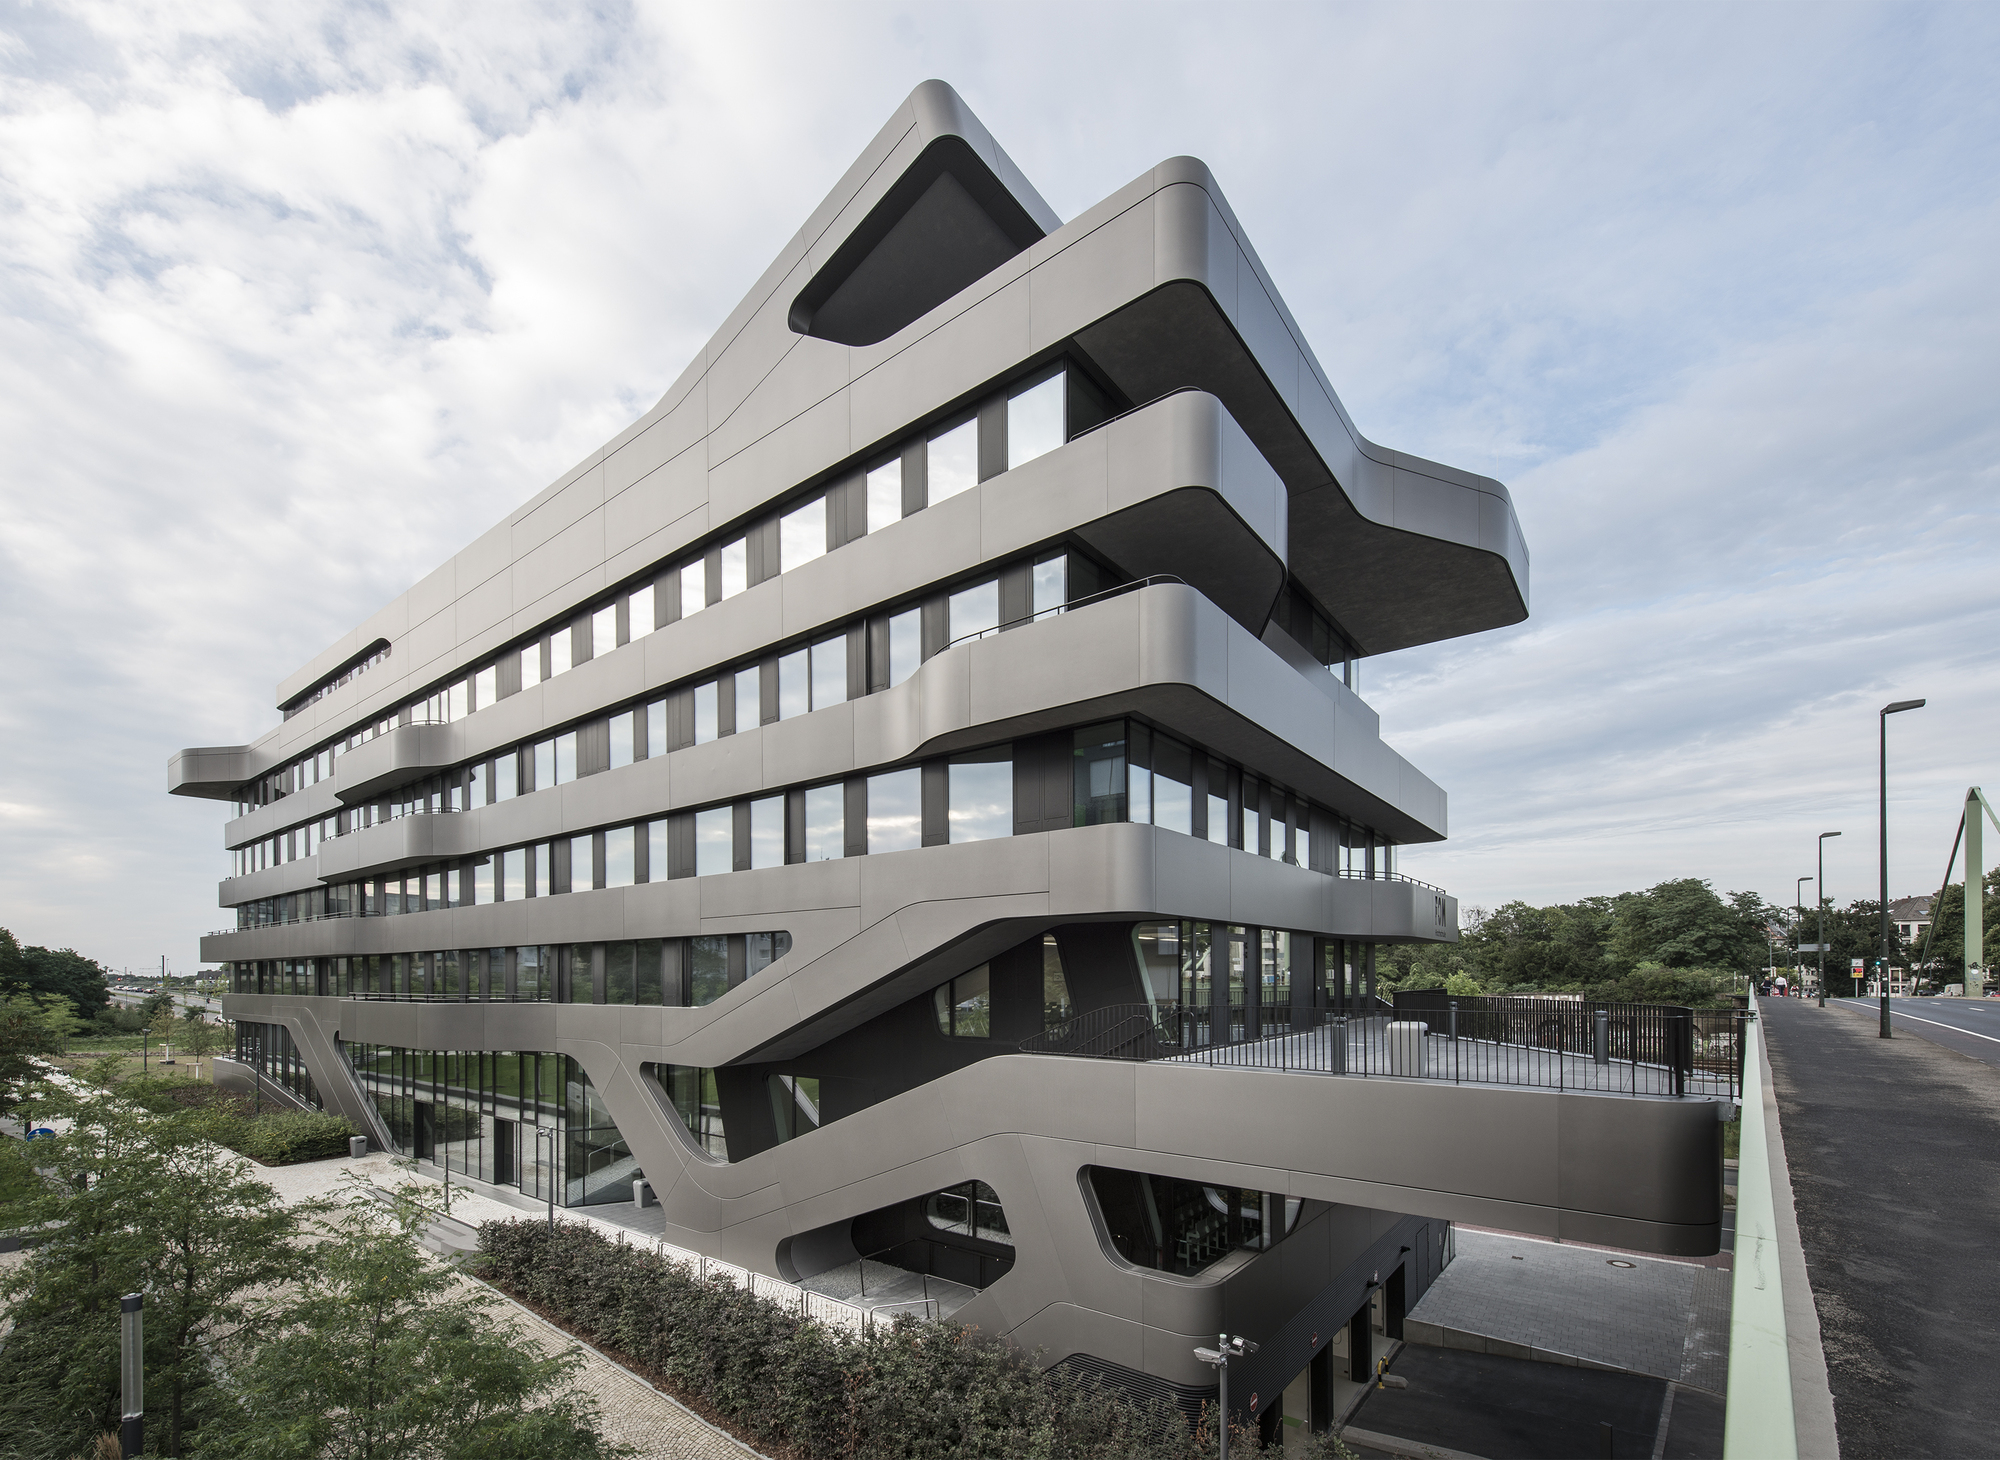 gallery of fom hochschule building in d sseldorf j mayer h architects 11. Black Bedroom Furniture Sets. Home Design Ideas